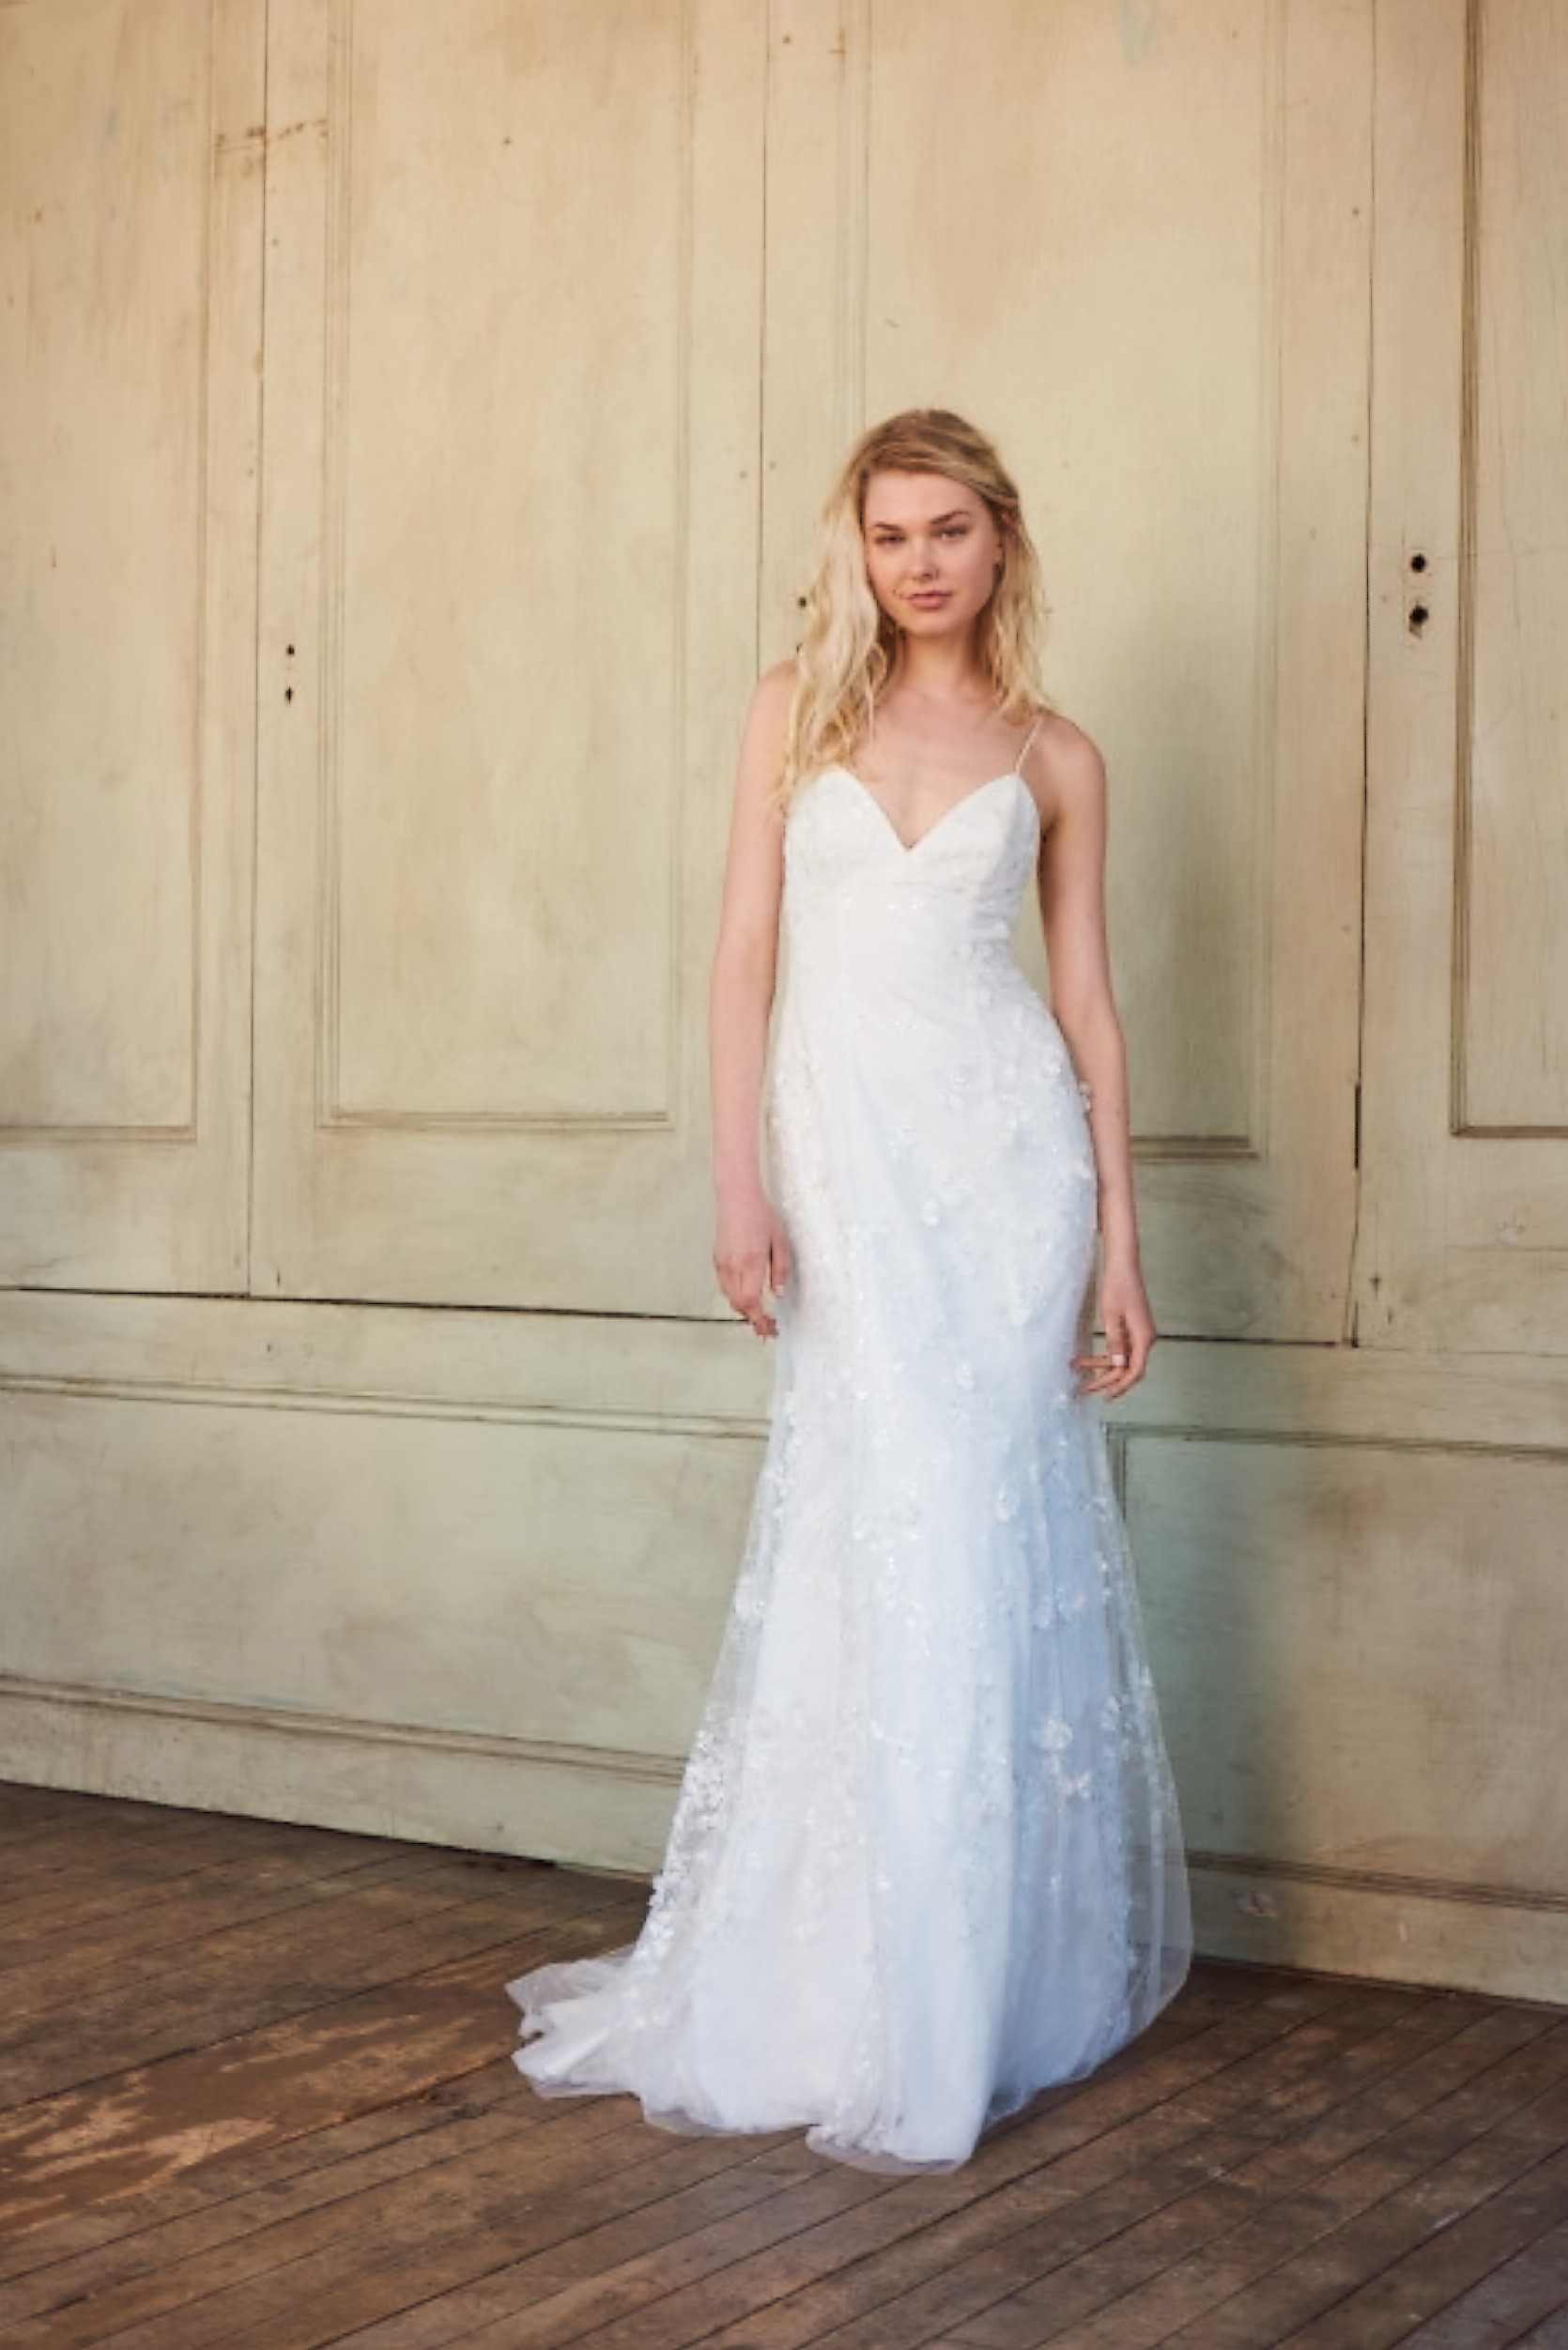 Top 10 Wedding Gown Trends from the 2018 NYC Bridal Fashion Week: Hits and Misses and Wedding Gown Inspiration